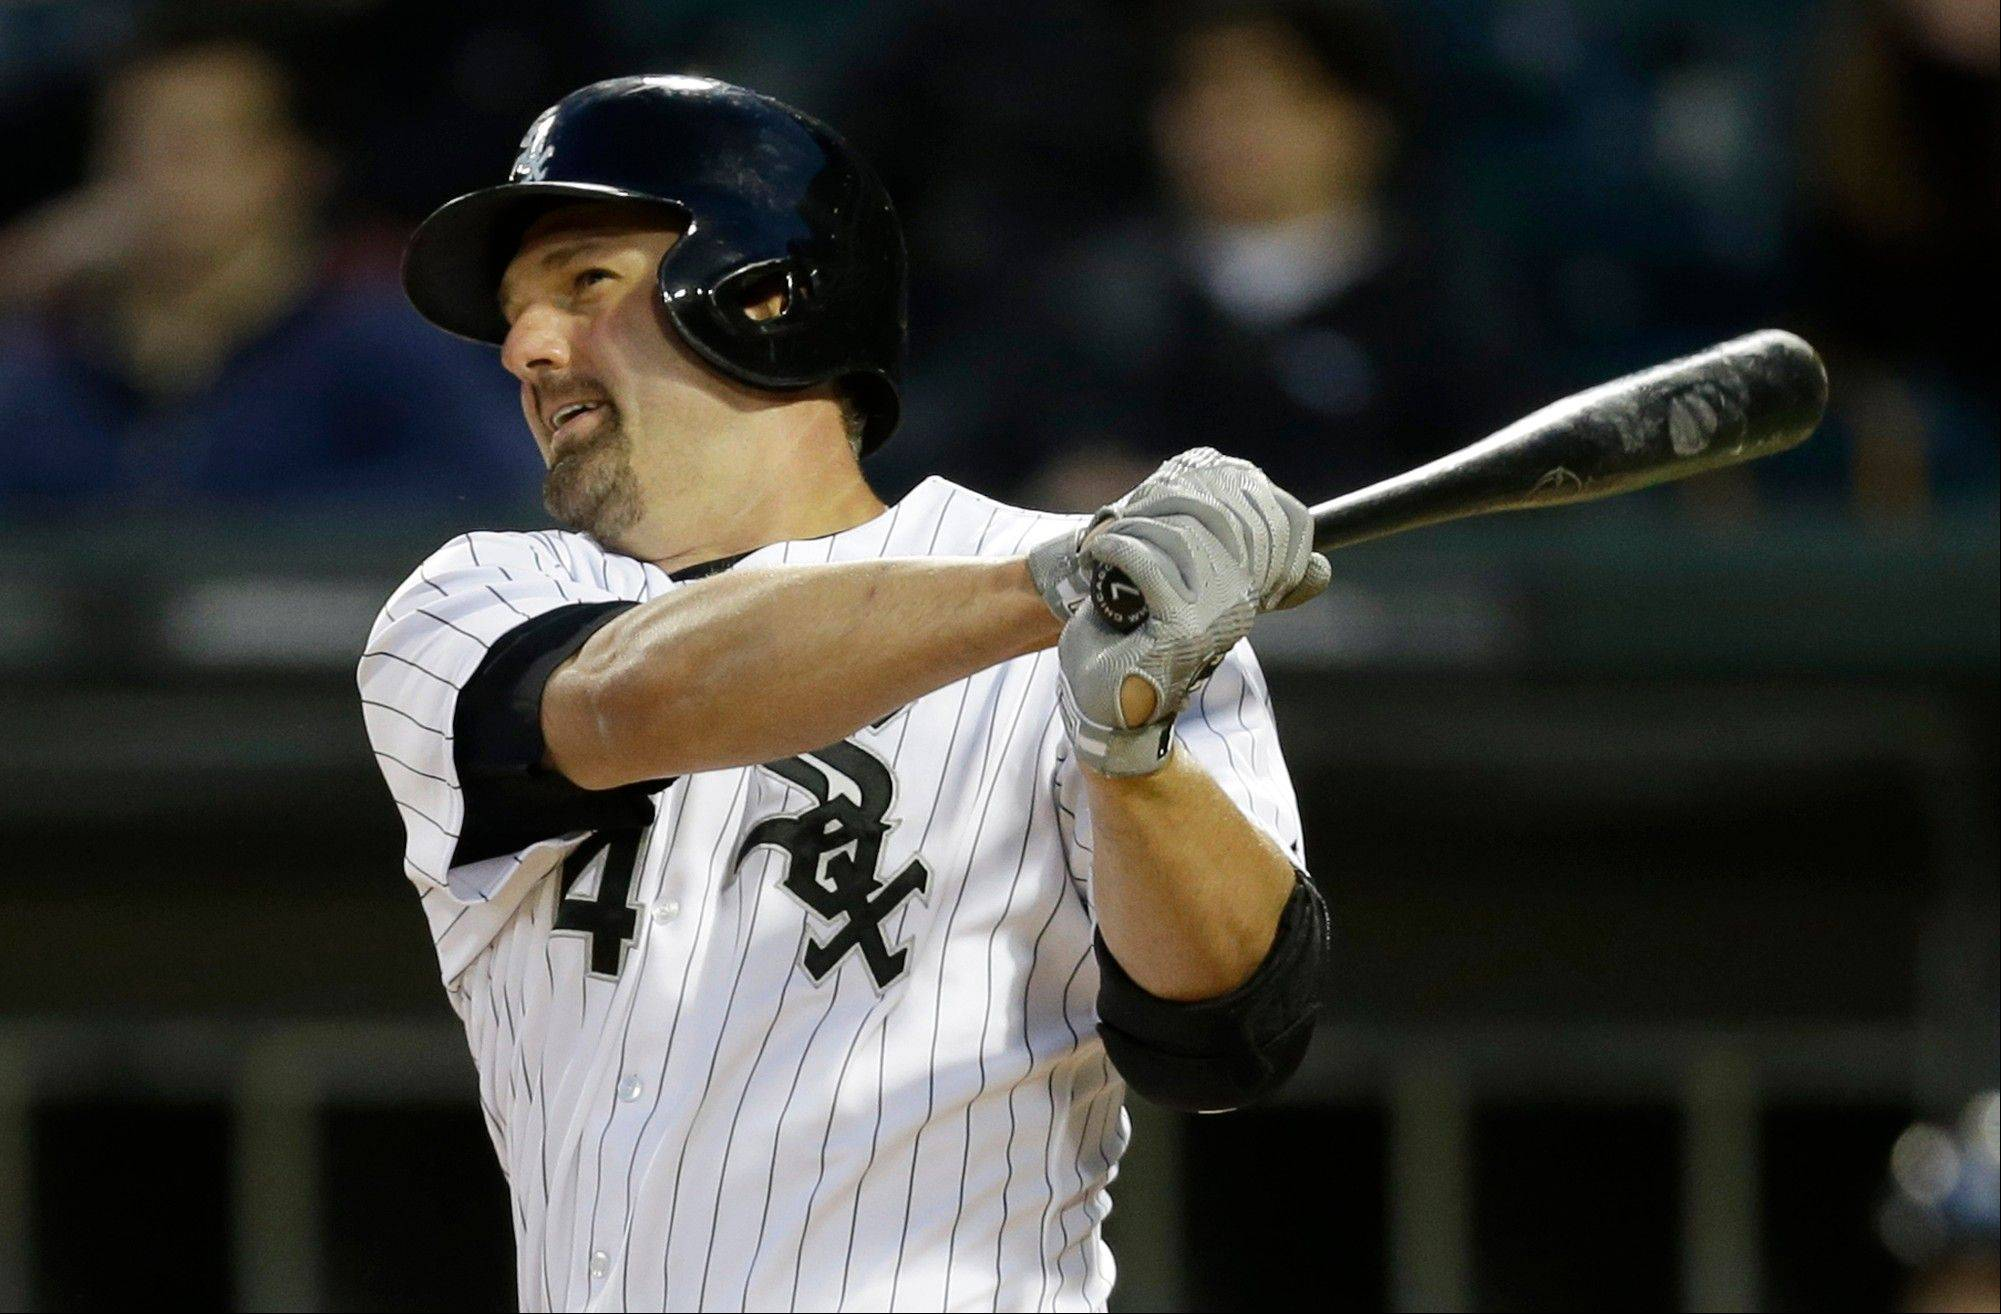 This weekend's season-ending series against the Royals could be the final time fans will see Paul Konerko taking his cuts for the White Sox.